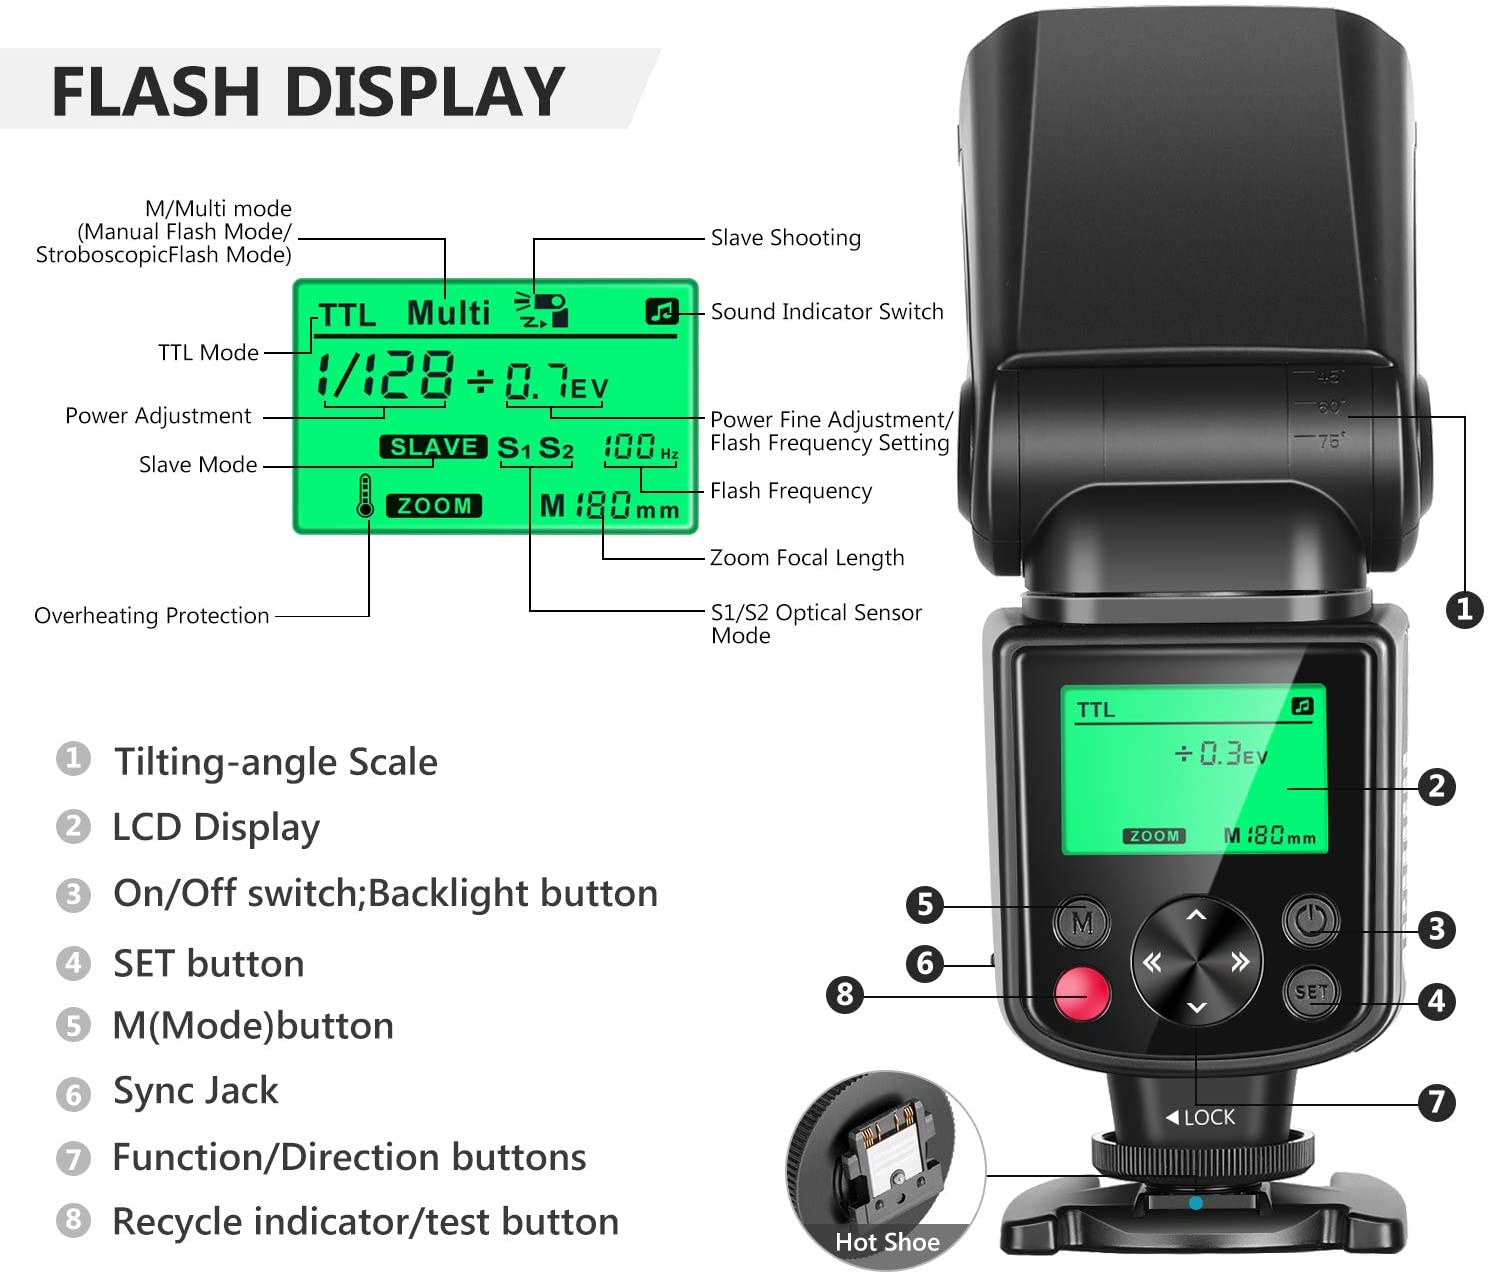 Neewer NW635 TTL GN58 Flash Speedlite with LCD Display Compatible with Sony MI Hot Shoe Mirrorless Cameras A9II A9 A7RIV//III//II A7III//II A7SII A6600 A6500 A6400 A6300 A6000 A99II A77II RX10II//III//IV